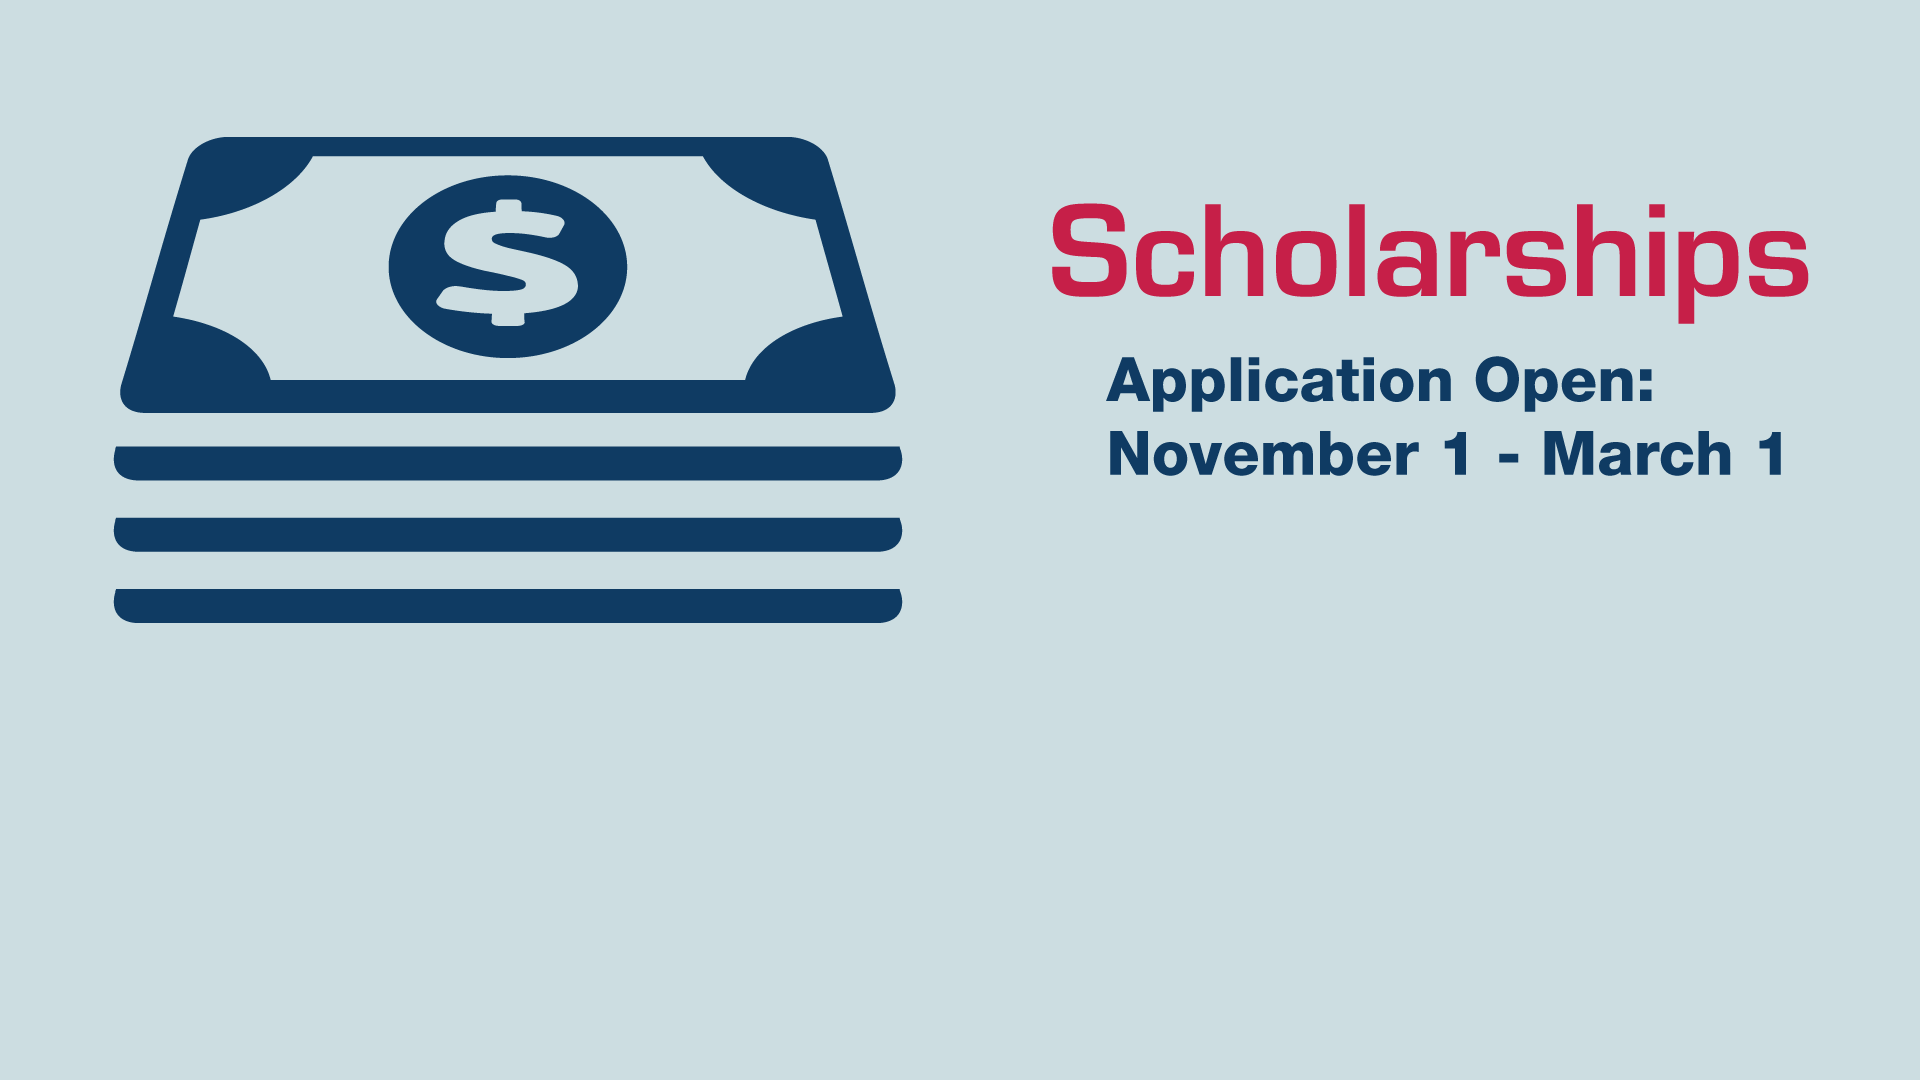 Scholarships application open from November 1 to March 1